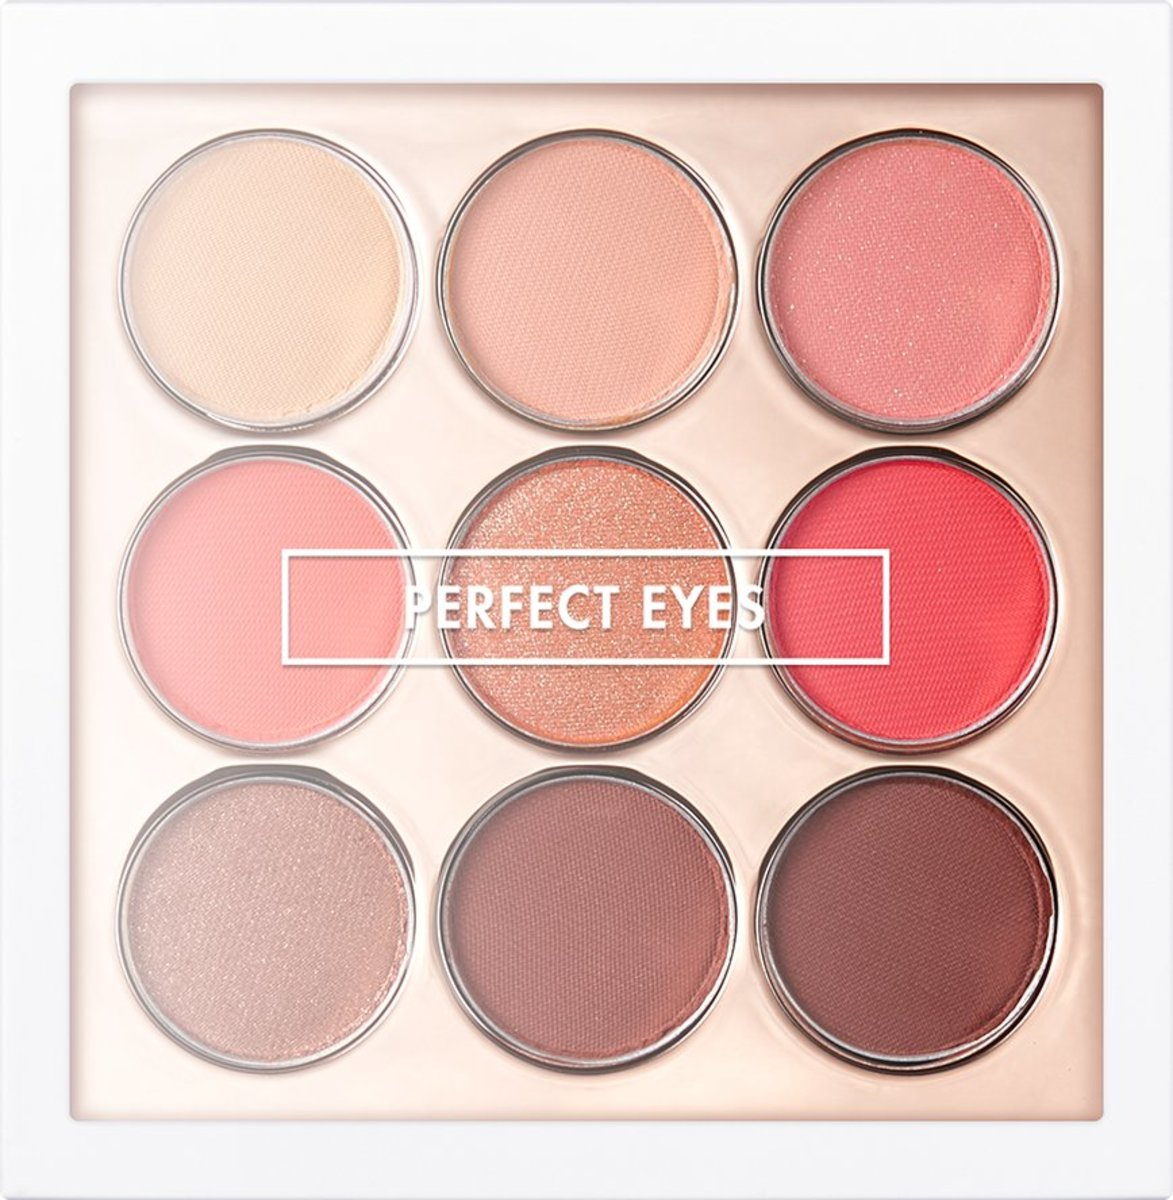 PERFECT EYES MOOD EYE PALETTE 05 BLOSSOM MOOD